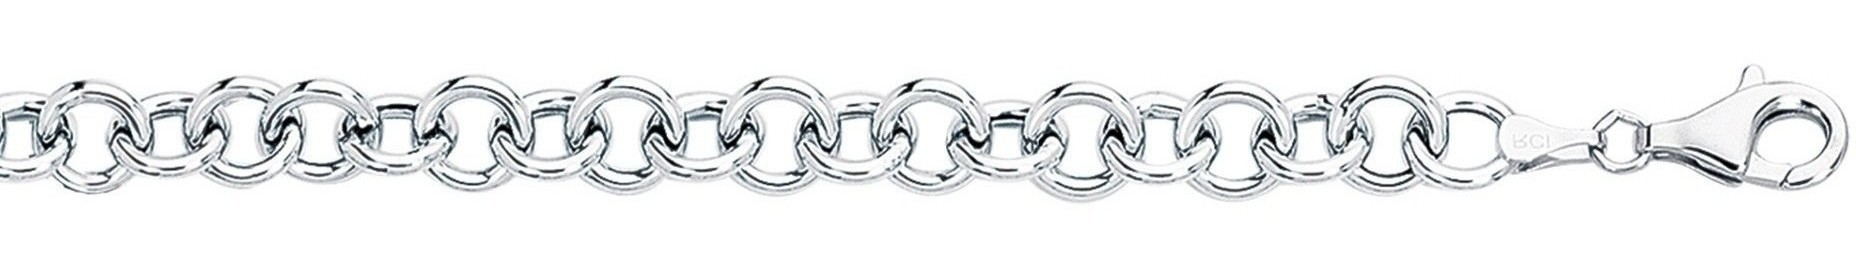 "7.25"" 14K White Gold Extra Wide Polished Diamond Cut Double Link Charm Bracelet w/ Pear Shape Clasp"